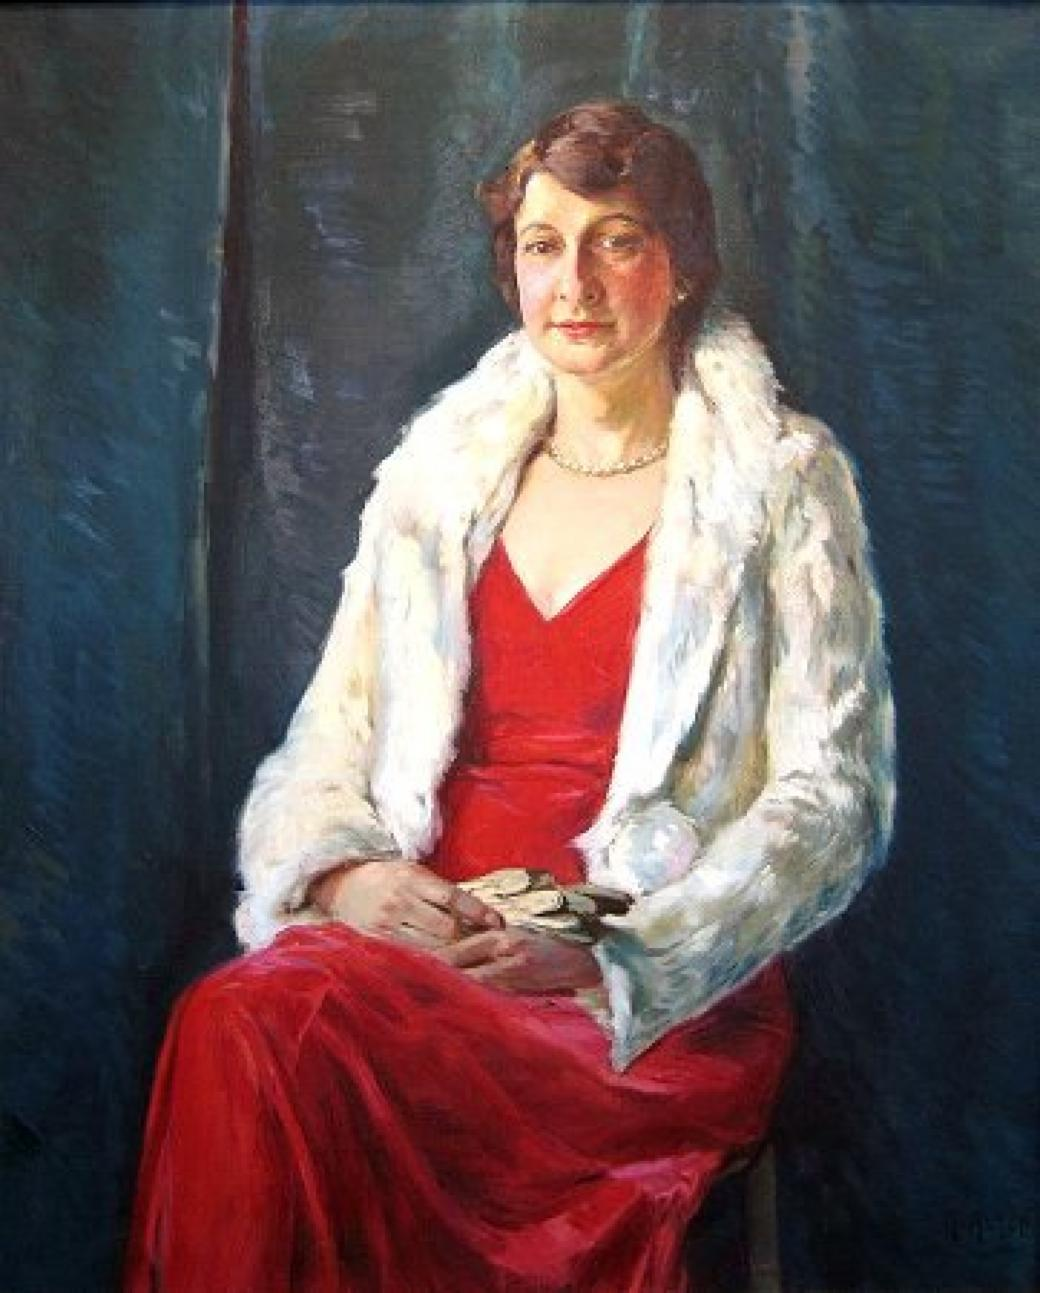 A portrait of a woman in a red dress, a white blazer.